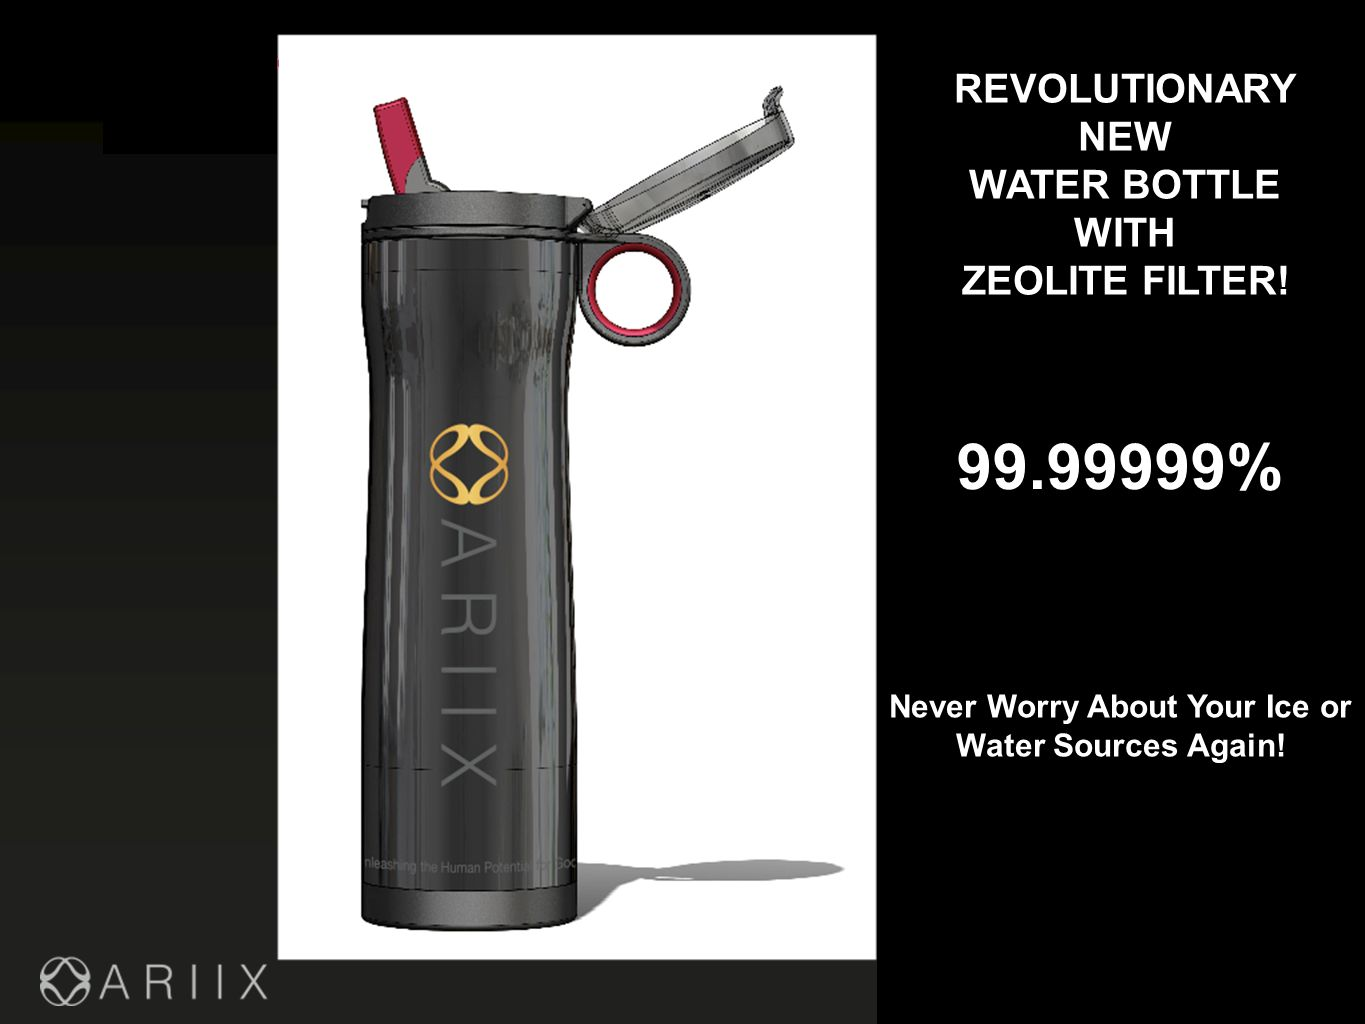 99.99999% REVOLUTIONARY NEW WATER BOTTLE WITH ZEOLITE FILTER.